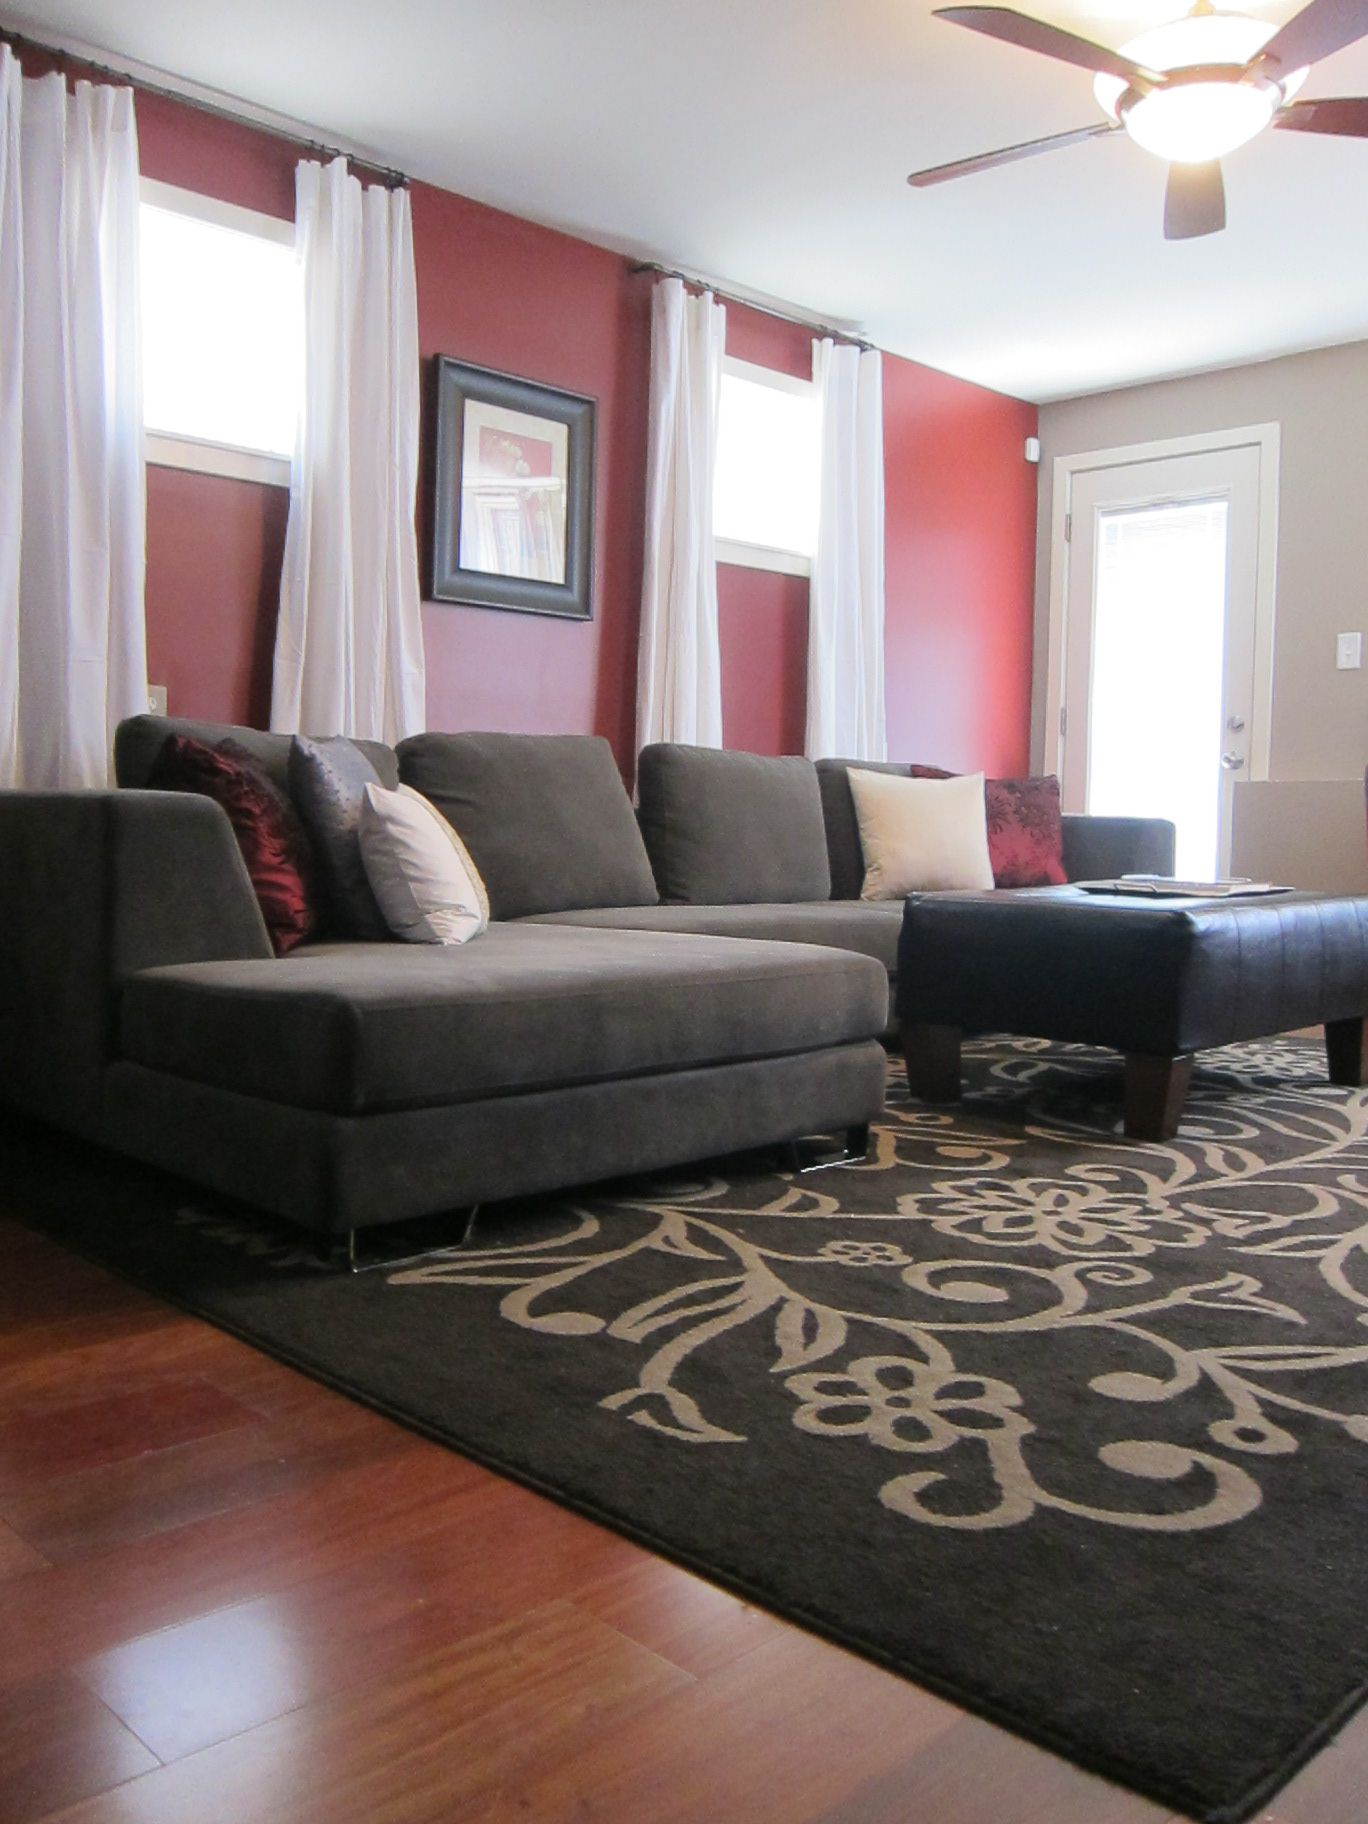 Red Wall Living Room A Philadelphia Tv Host 39s Home Complete With A Red Accent